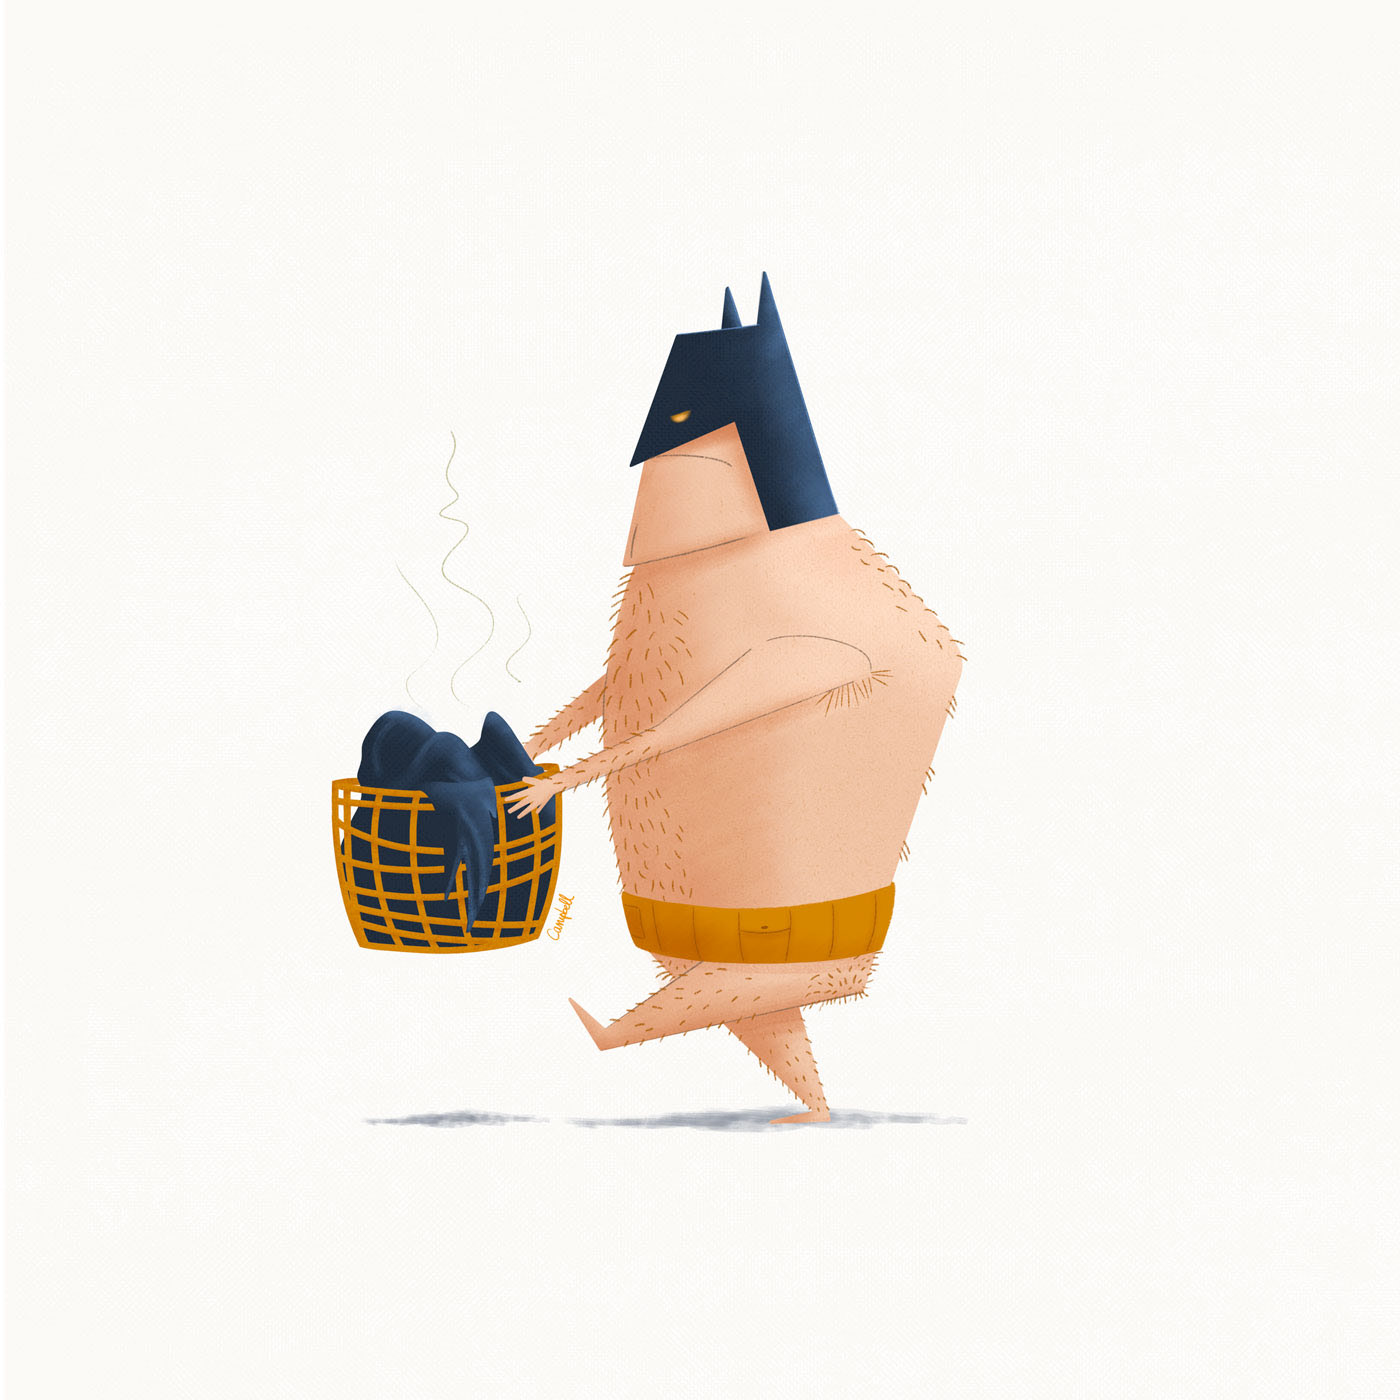 Imagining the daily life of Batman - Batlife Illustrations